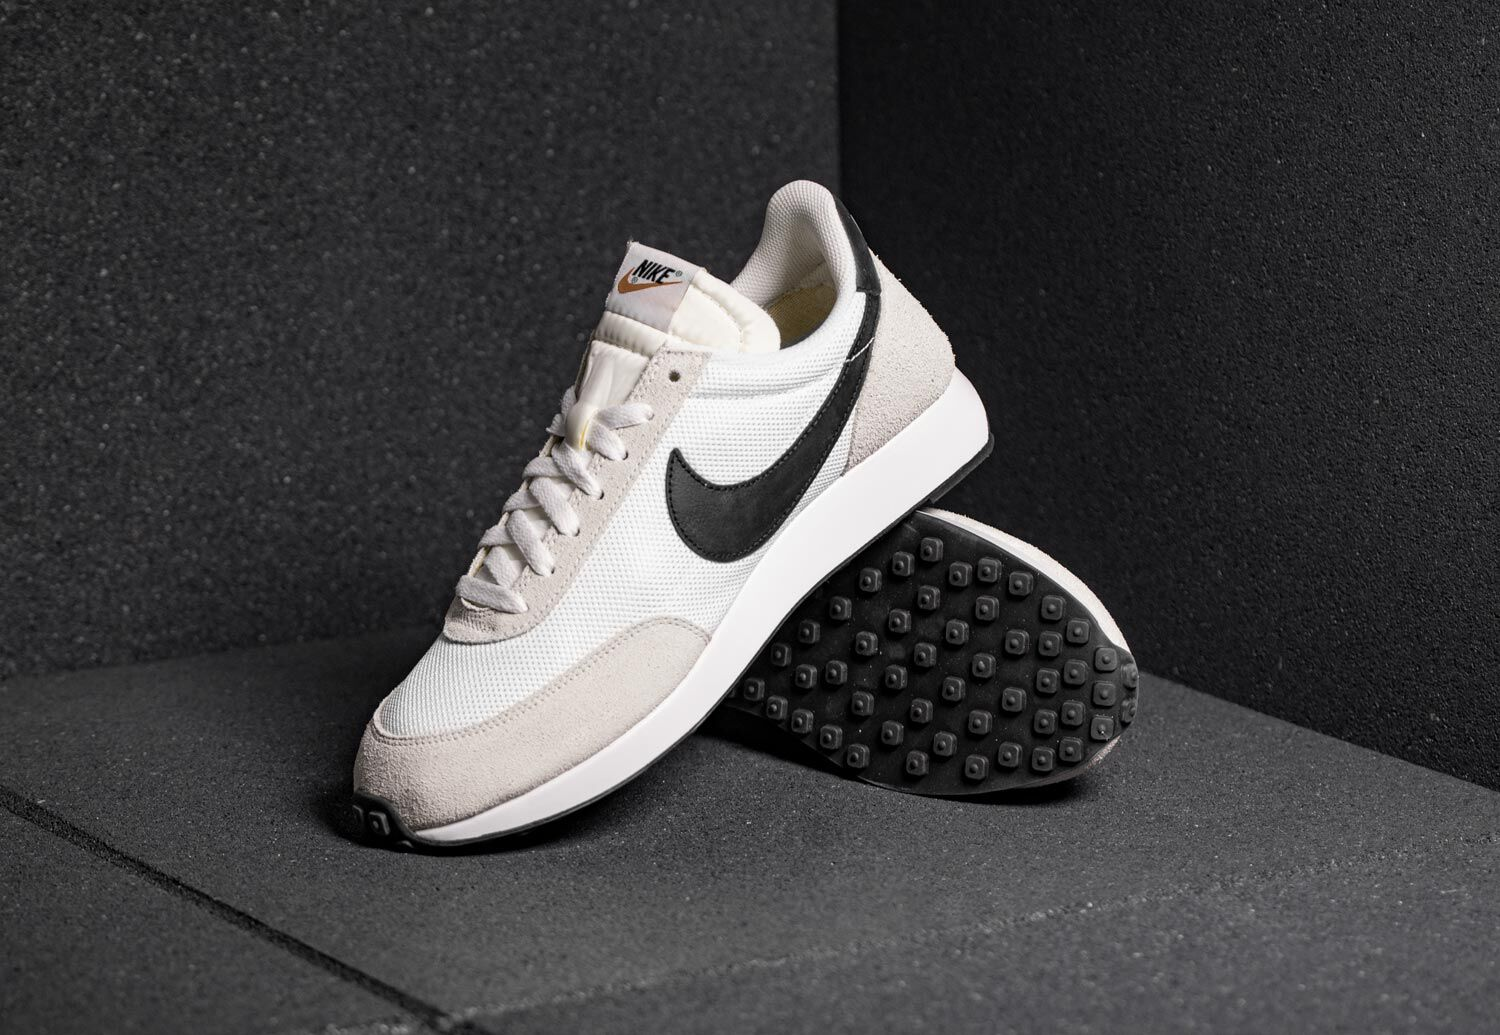 Independencia traje Masculinidad  Nike Air Tailwind 79 - Sneakers Low at Stylefile